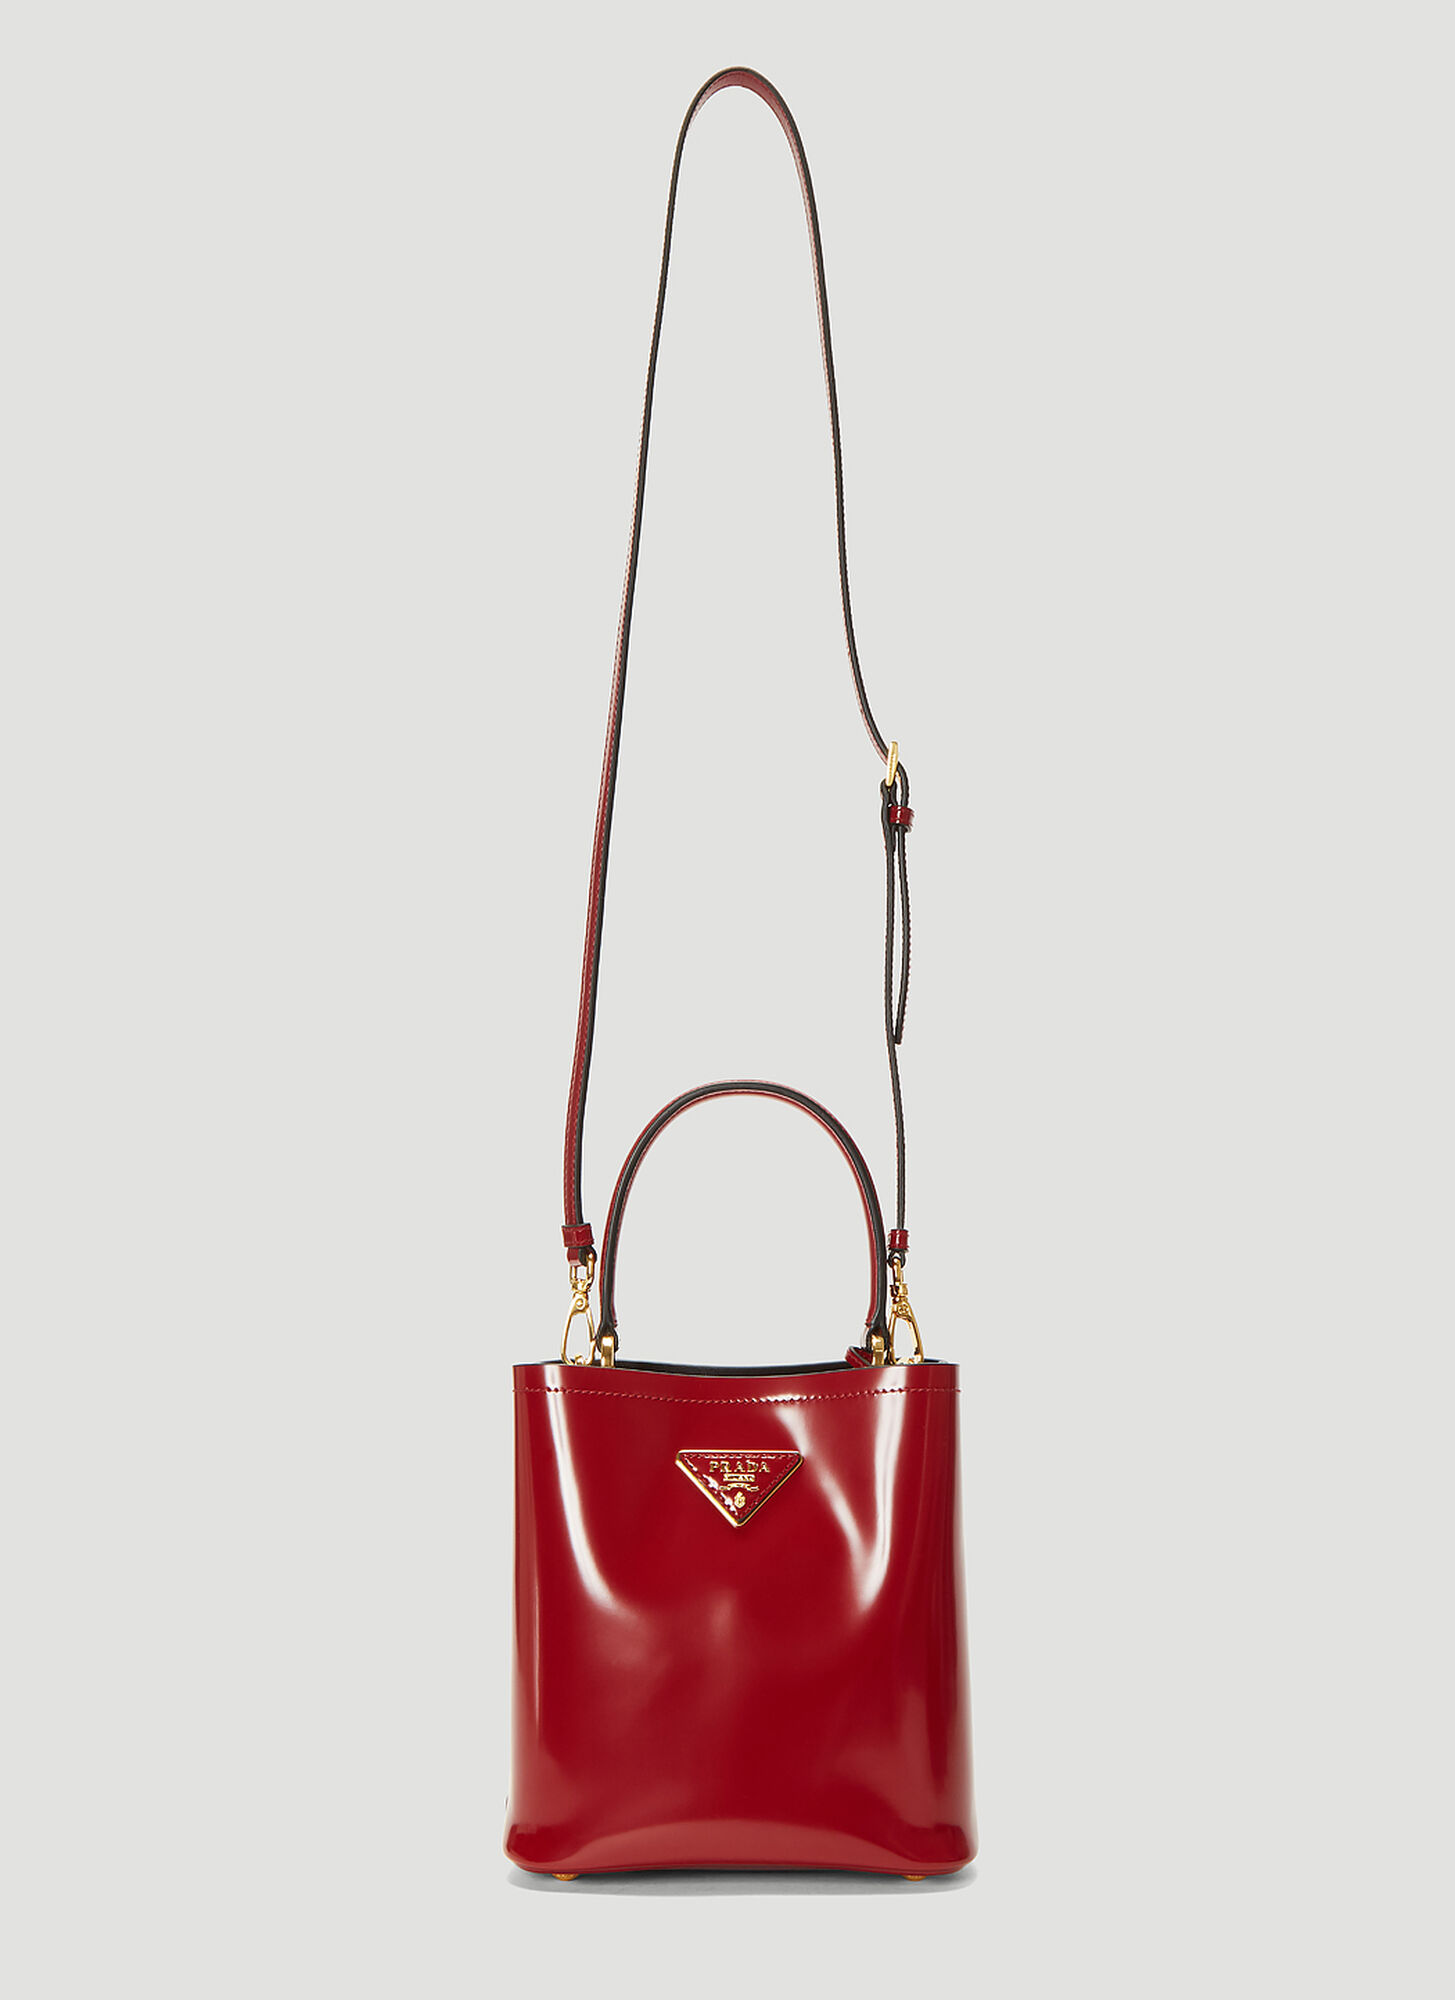 Prada Small Panier Bag in Red